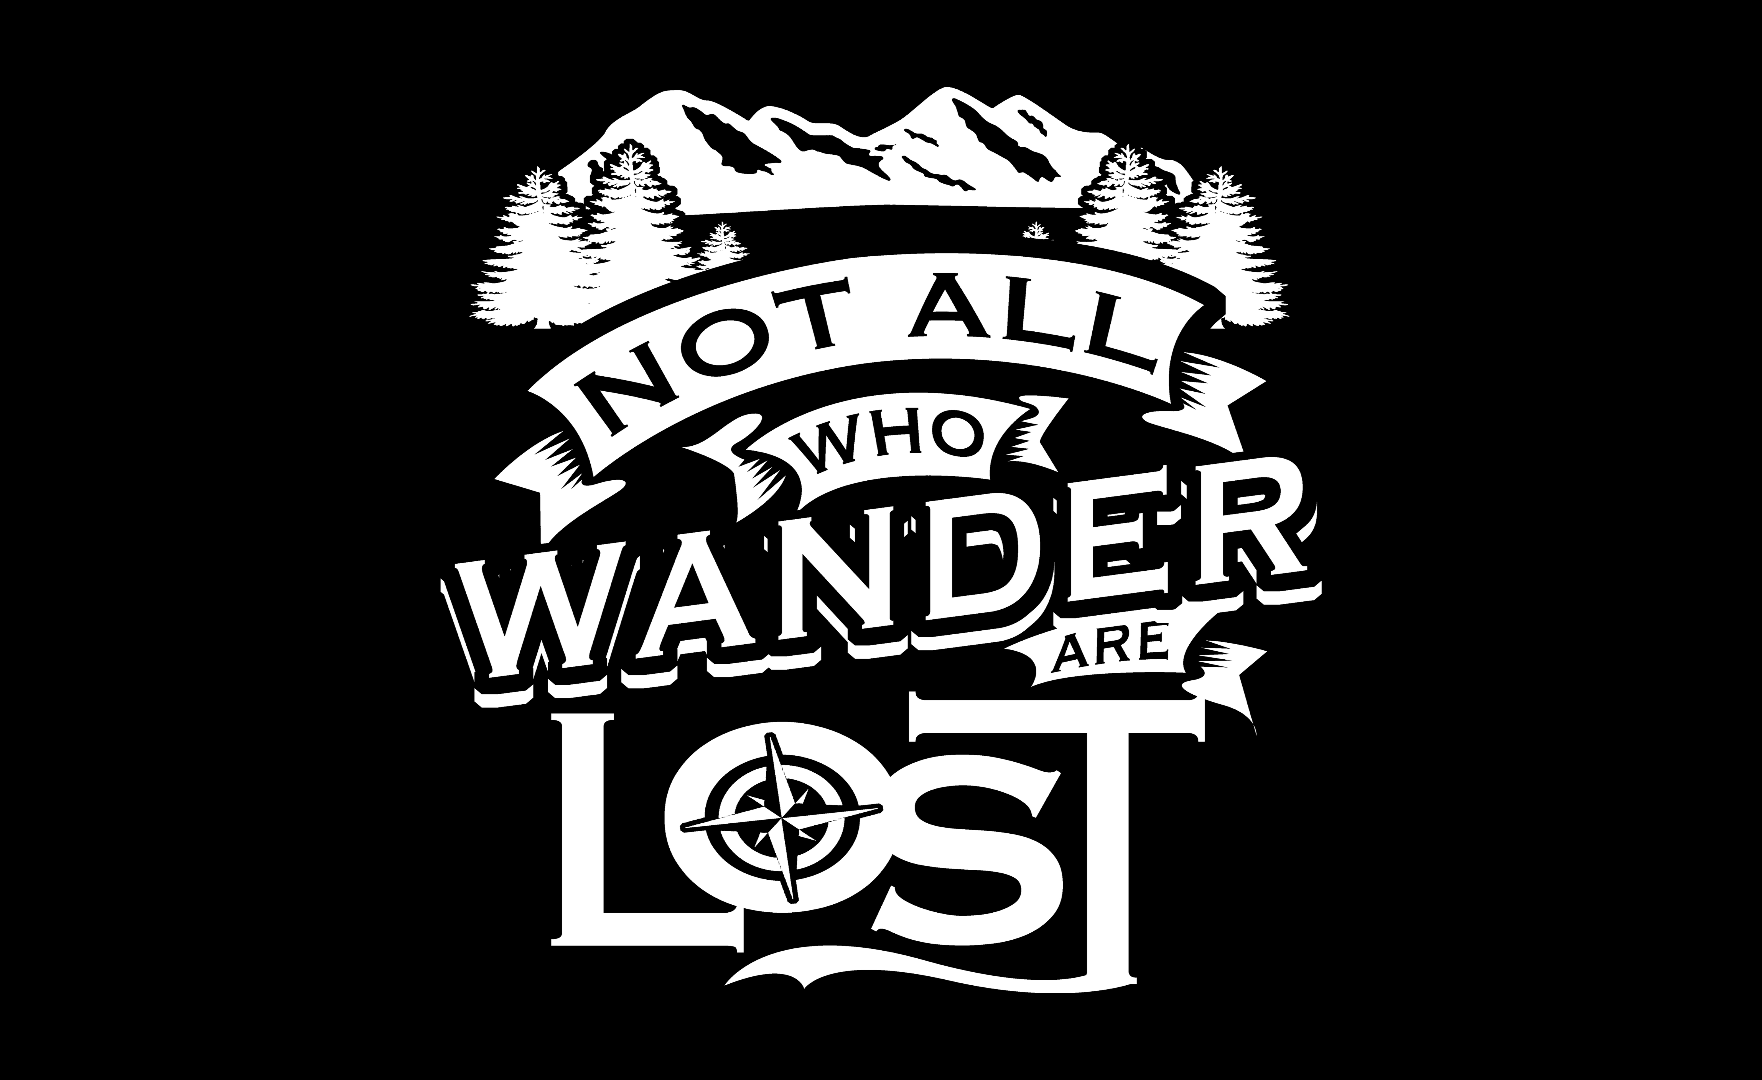 not all who wander are lost flag